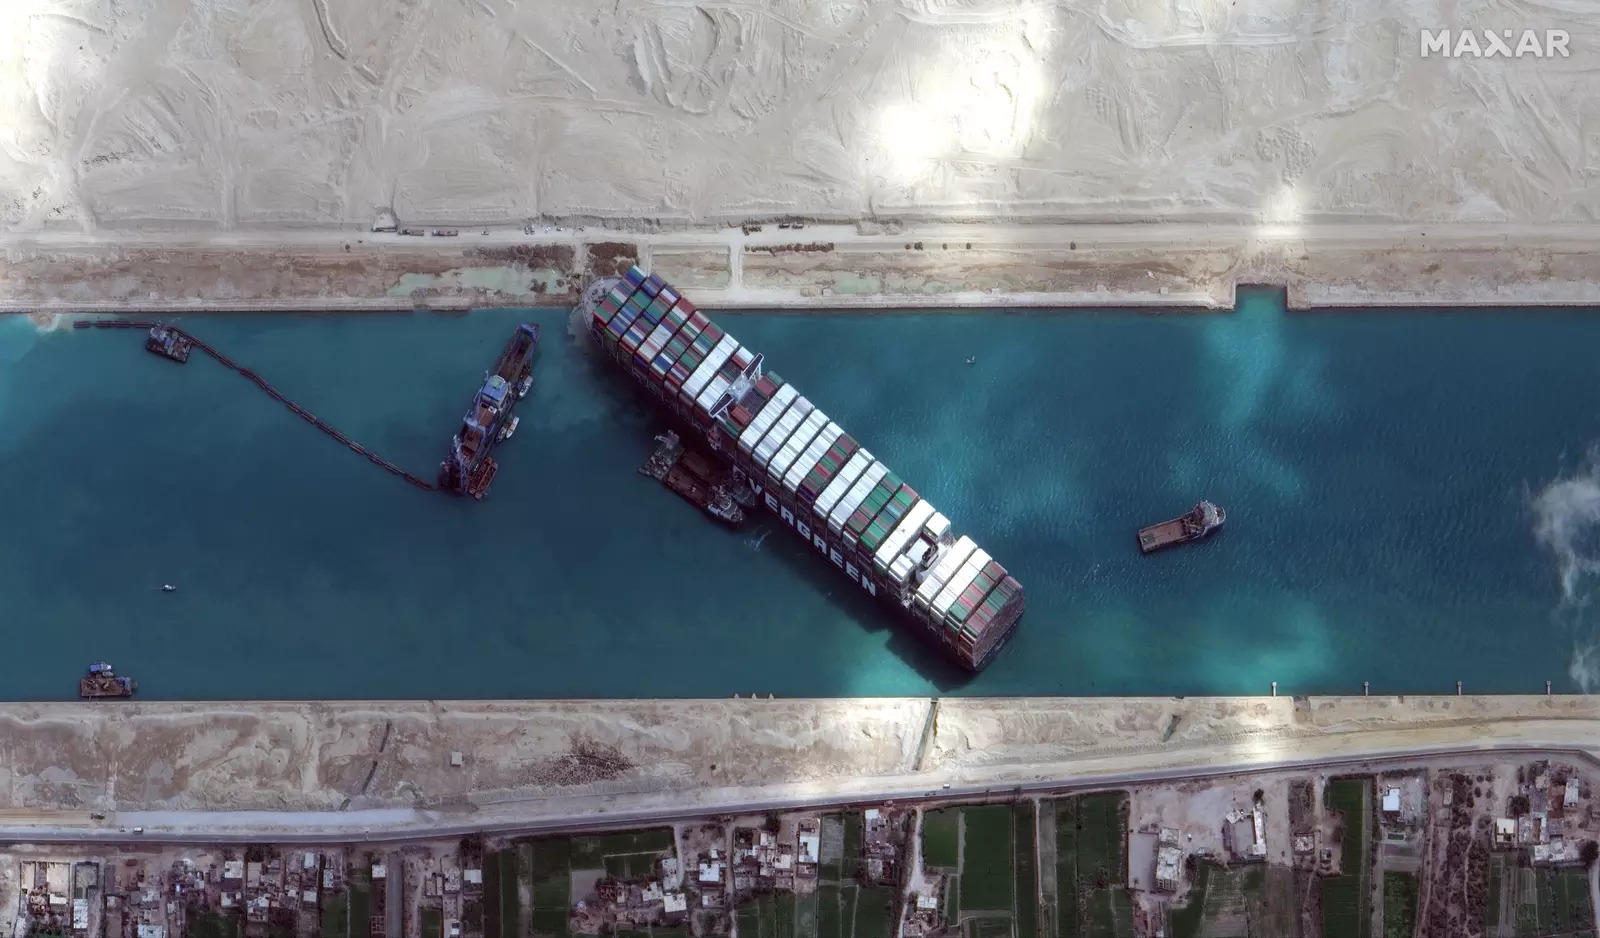 Osama Rabie pointed out that 14 tug boats are working to salvage the Panamaflagged ship, Ever Green, from all directions.